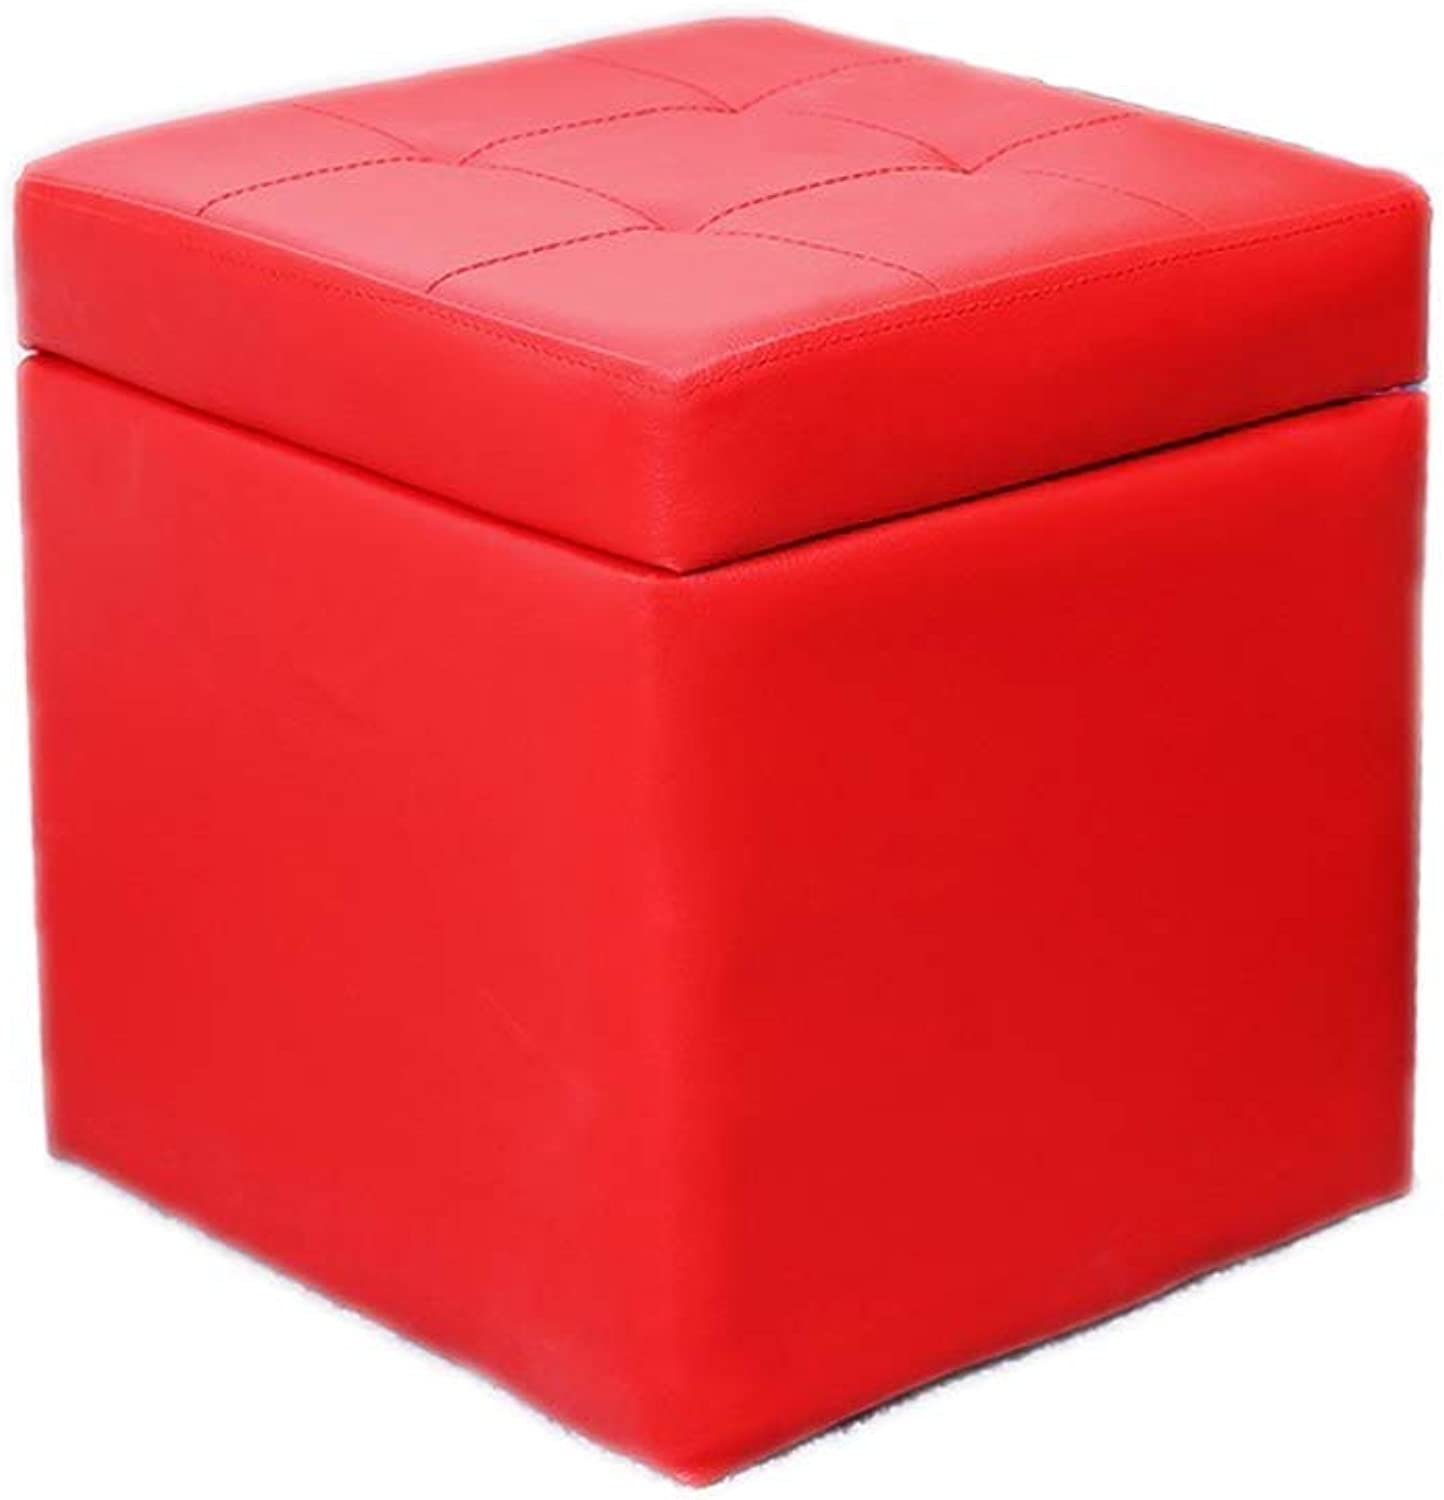 Storage Stool Footstool Footstool Foldaway Toy Storage Box Cube Pouffe Seat Stool Chest Chair Trunk Practical Footrest LEBAO (color   Red)